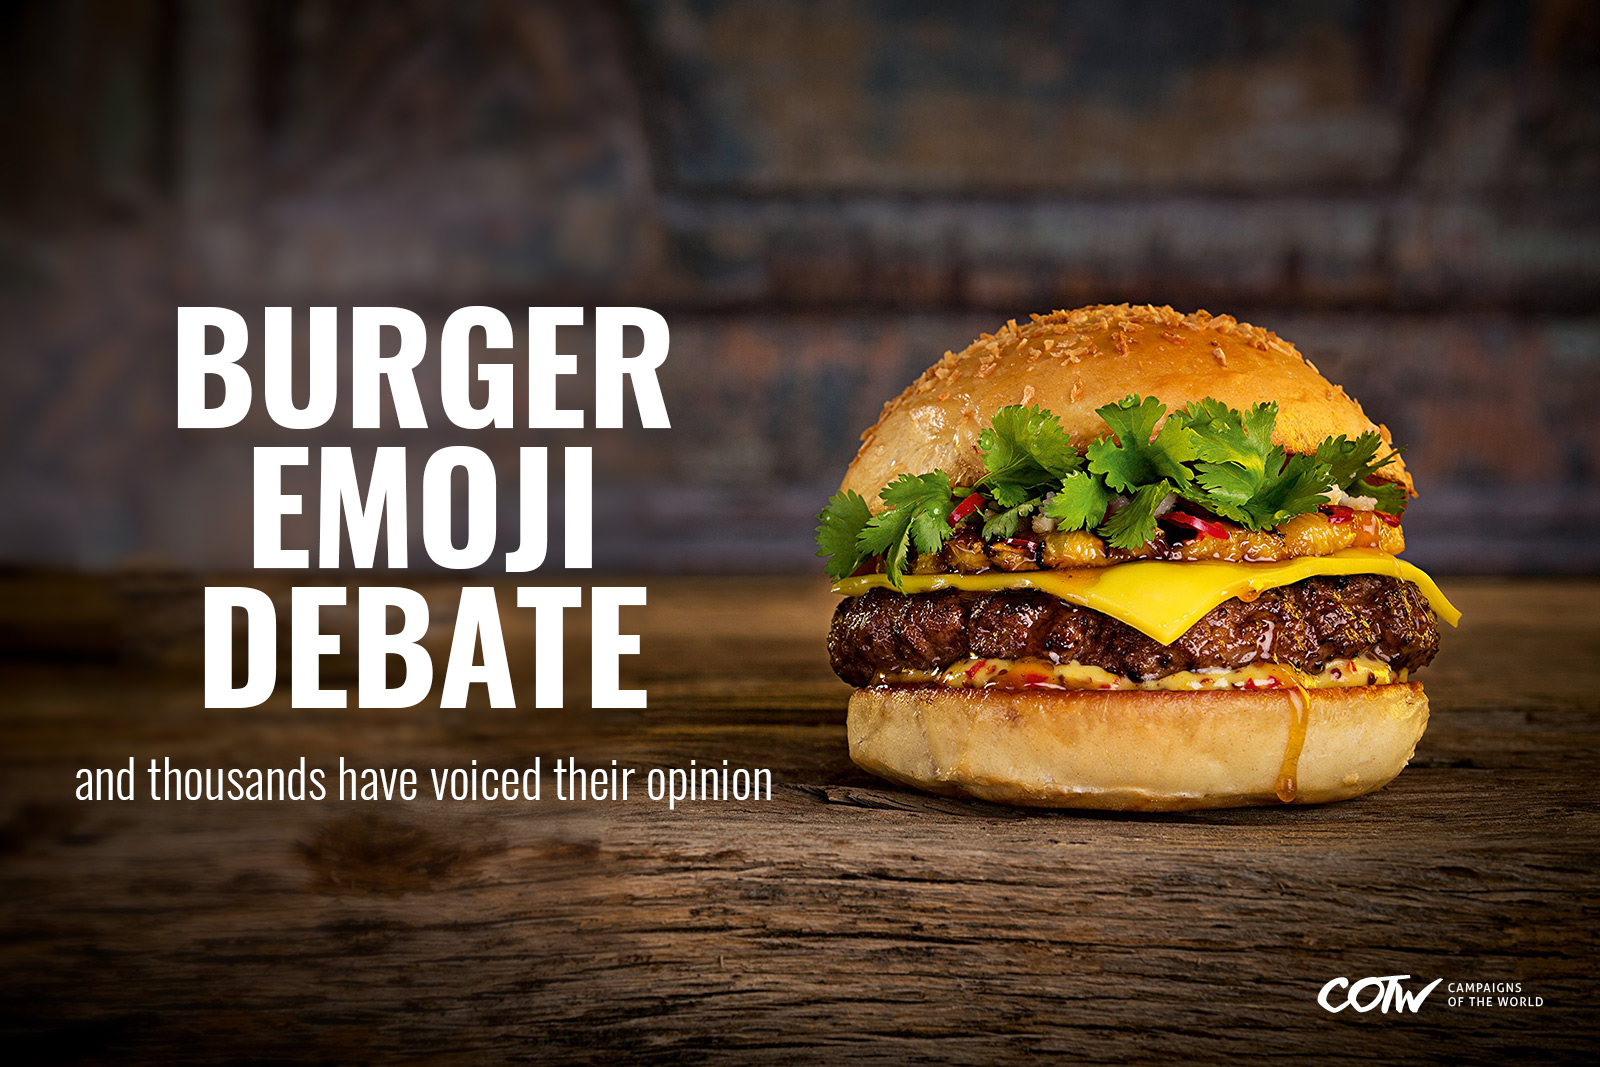 Should the cheese be underneath the patty or above it? Burger Emoji debate from the brands